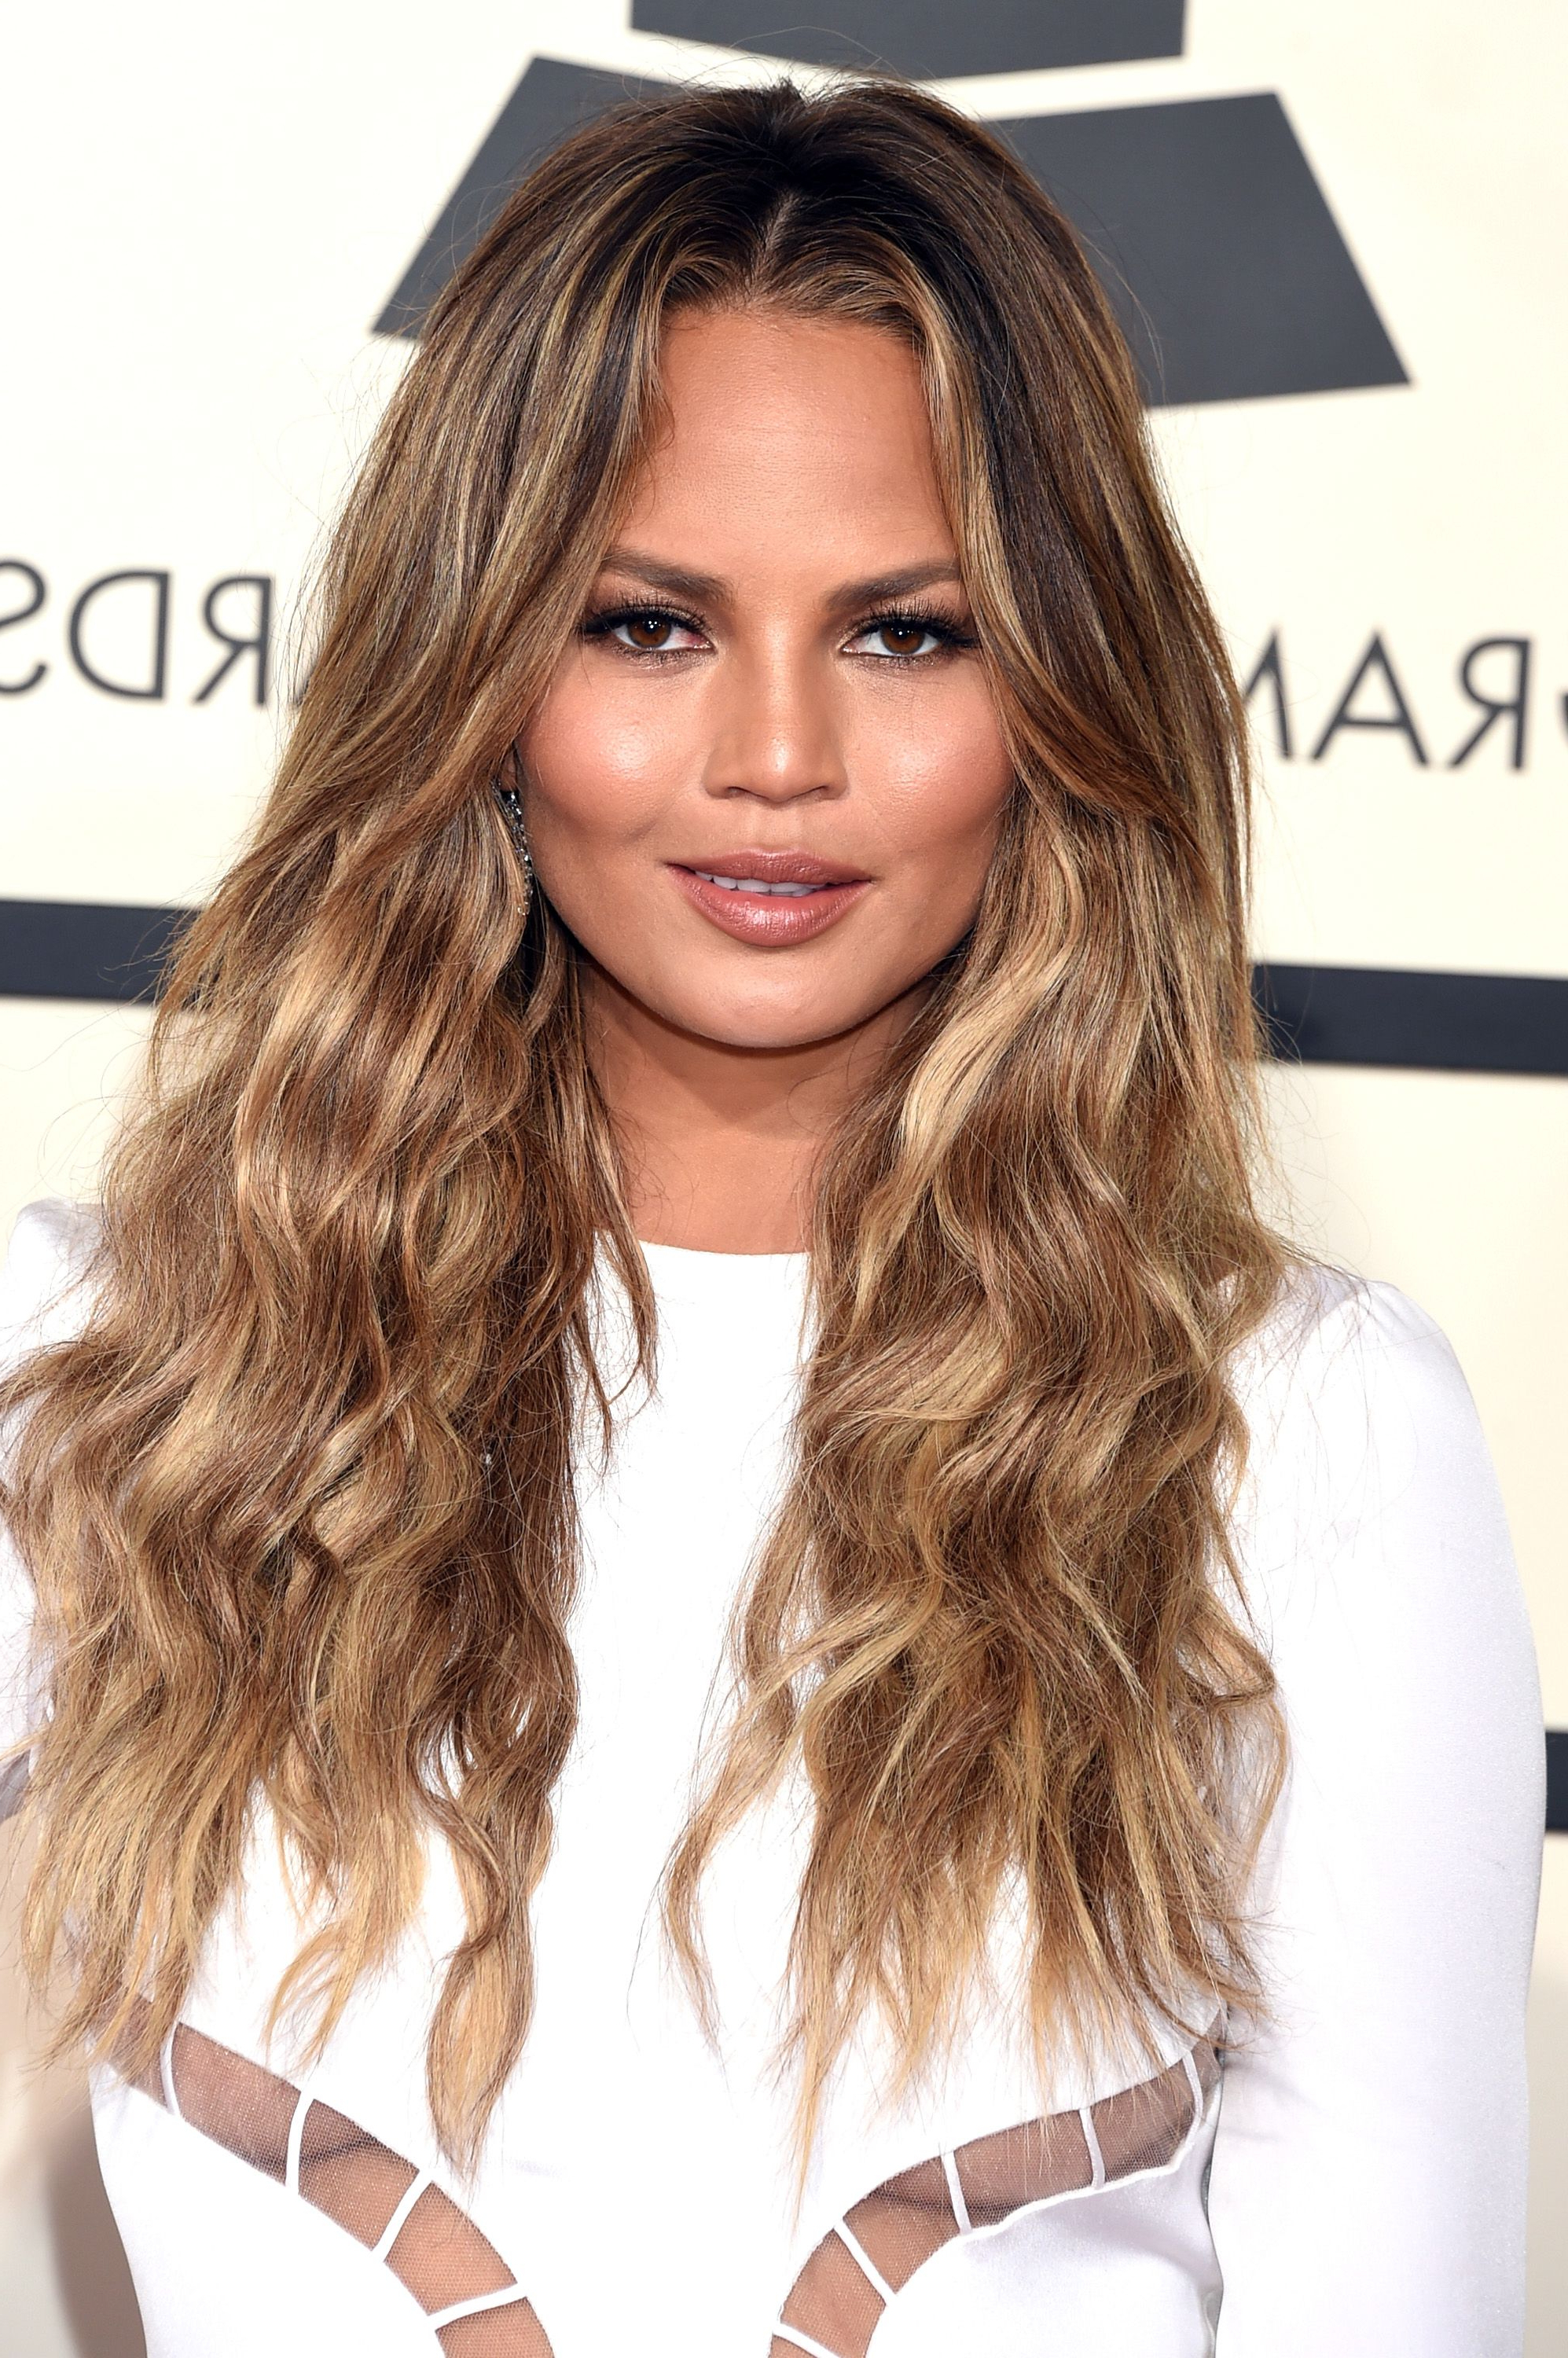 Current Swoopy Layers Hairstyles For Mid Length Hair Throughout 40 Best Layered Haircuts, Hairstyles & Trends For (View 17 of 20)